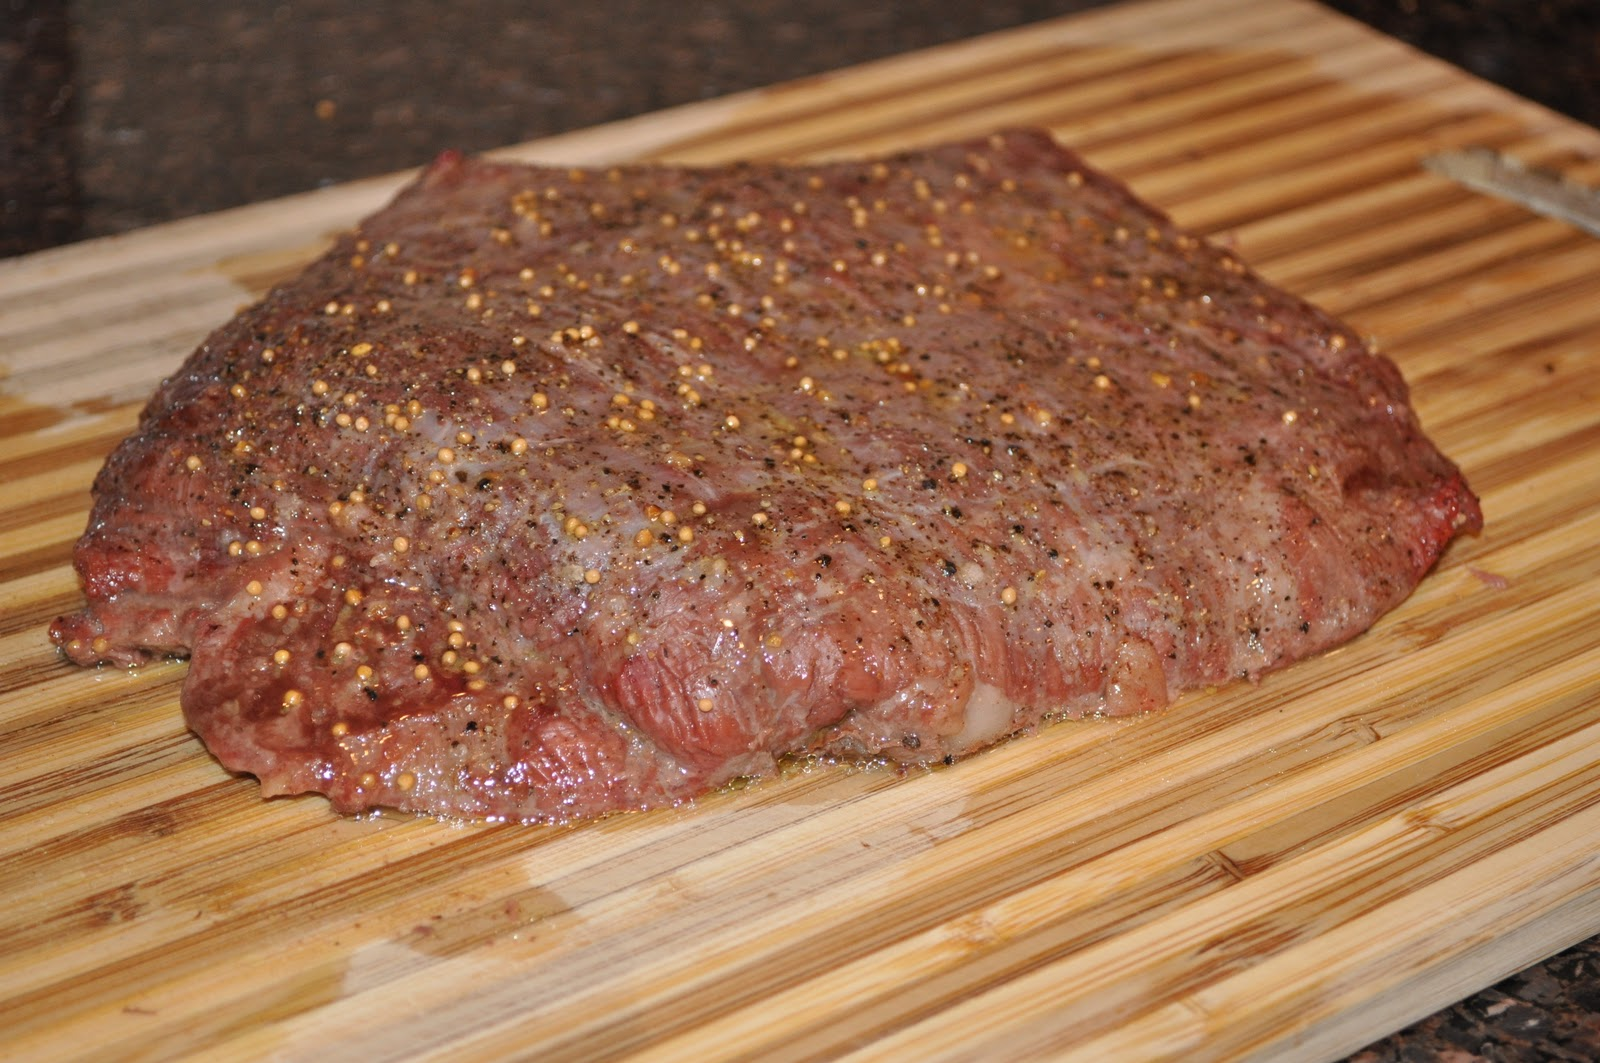 Shih's Cooking: Grilled Flank Steak with Mushrooms